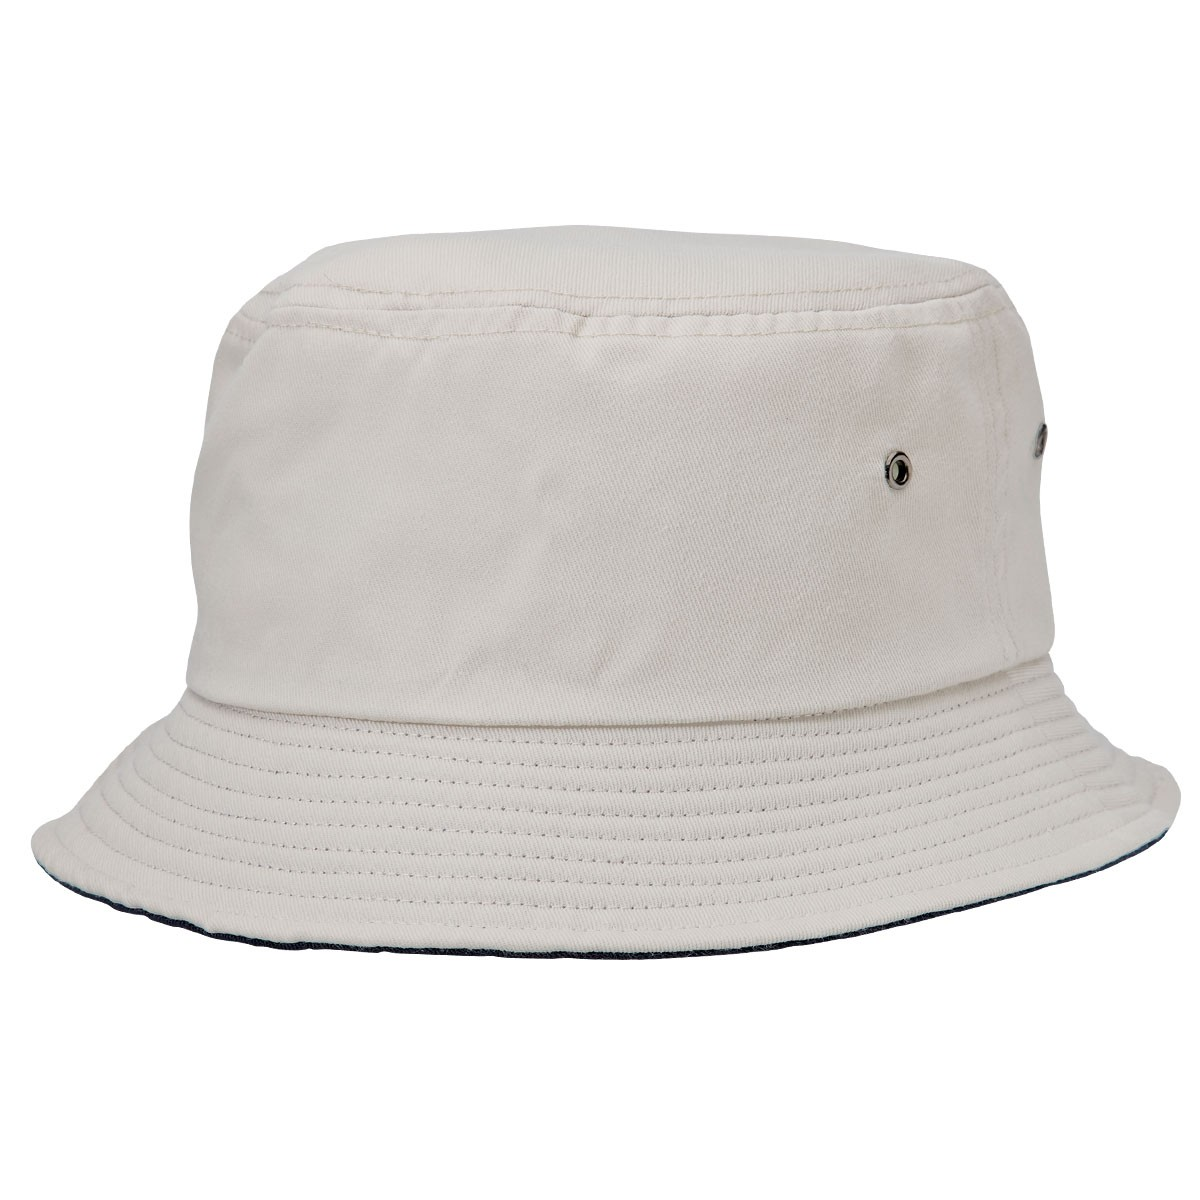 Promotional Product Cotton Twill Bucket Hat